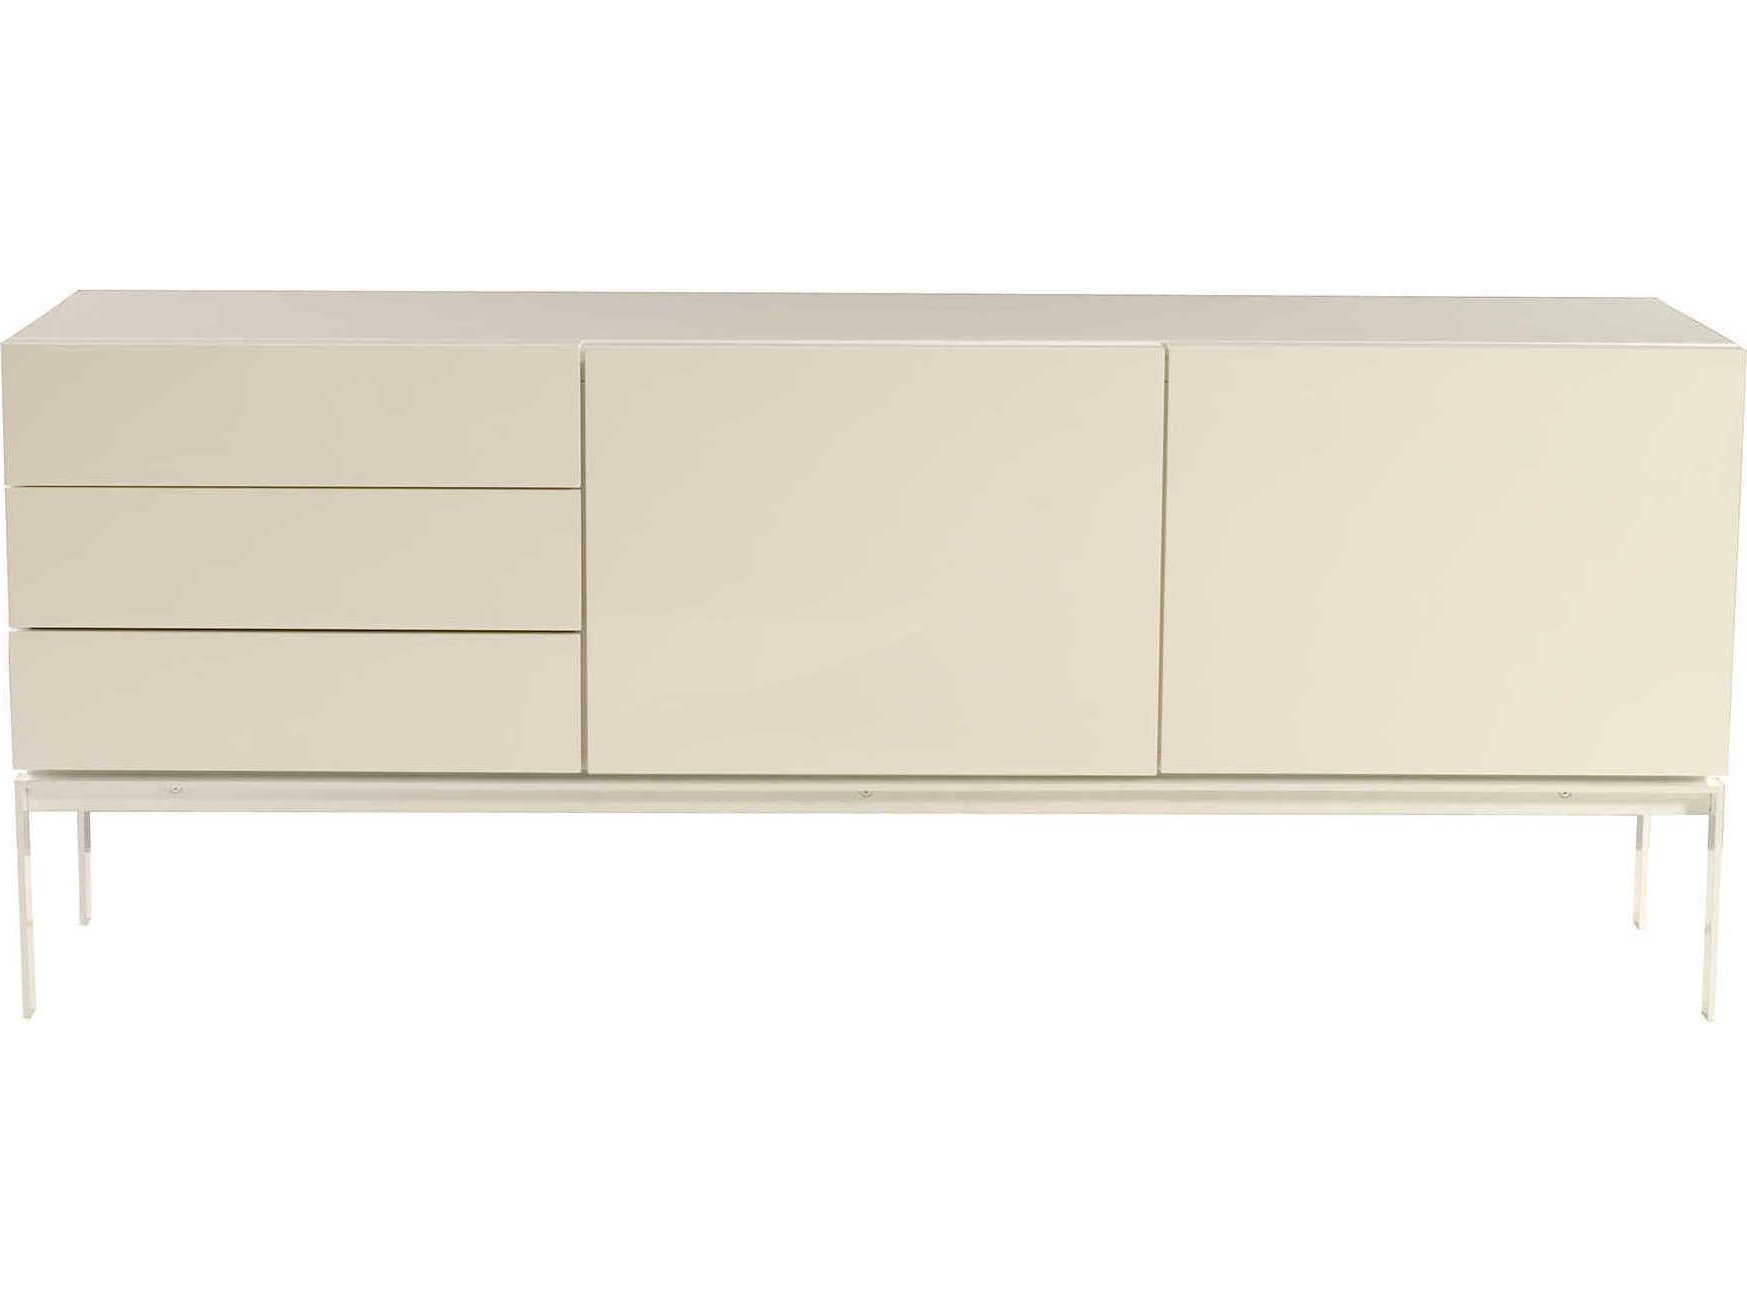 Temahome Glare High Gloss White Rectangular Buffet In 2019 With White Wood And Chrome Metal High Gloss Buffets (View 13 of 20)